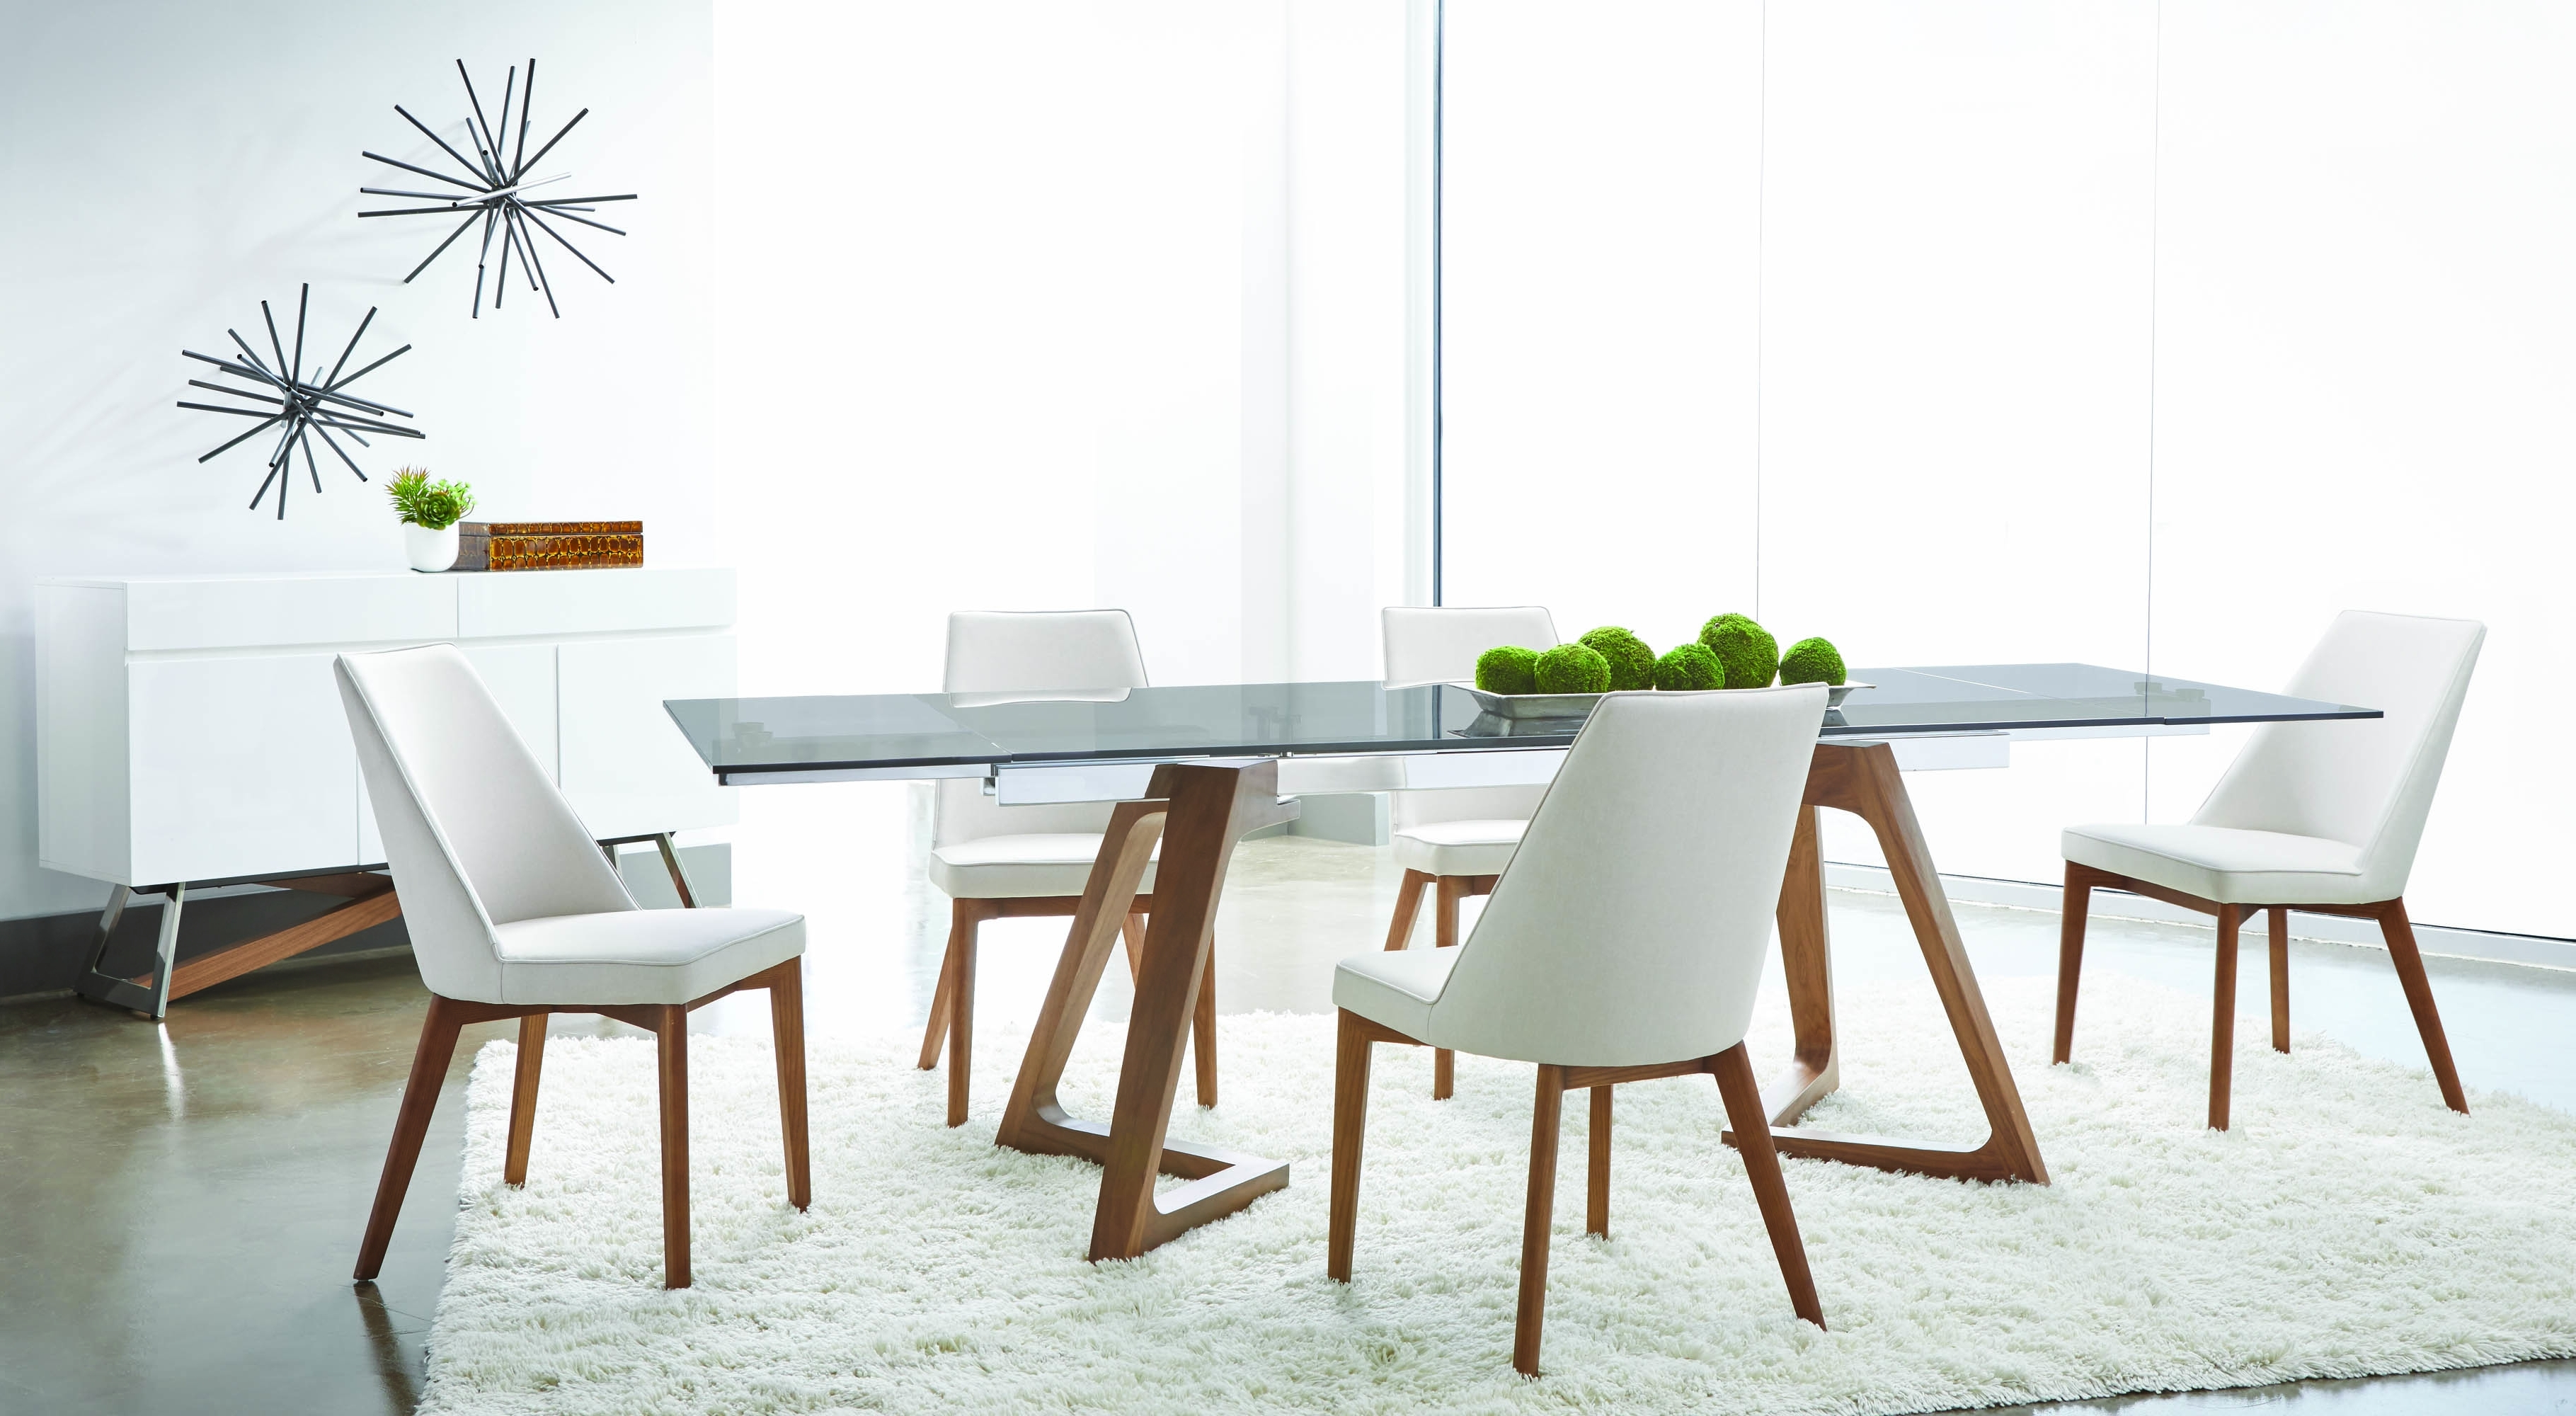 Most Recently Released Noah Dining Chair Regarding Noah Dining Tables (View 13 of 25)